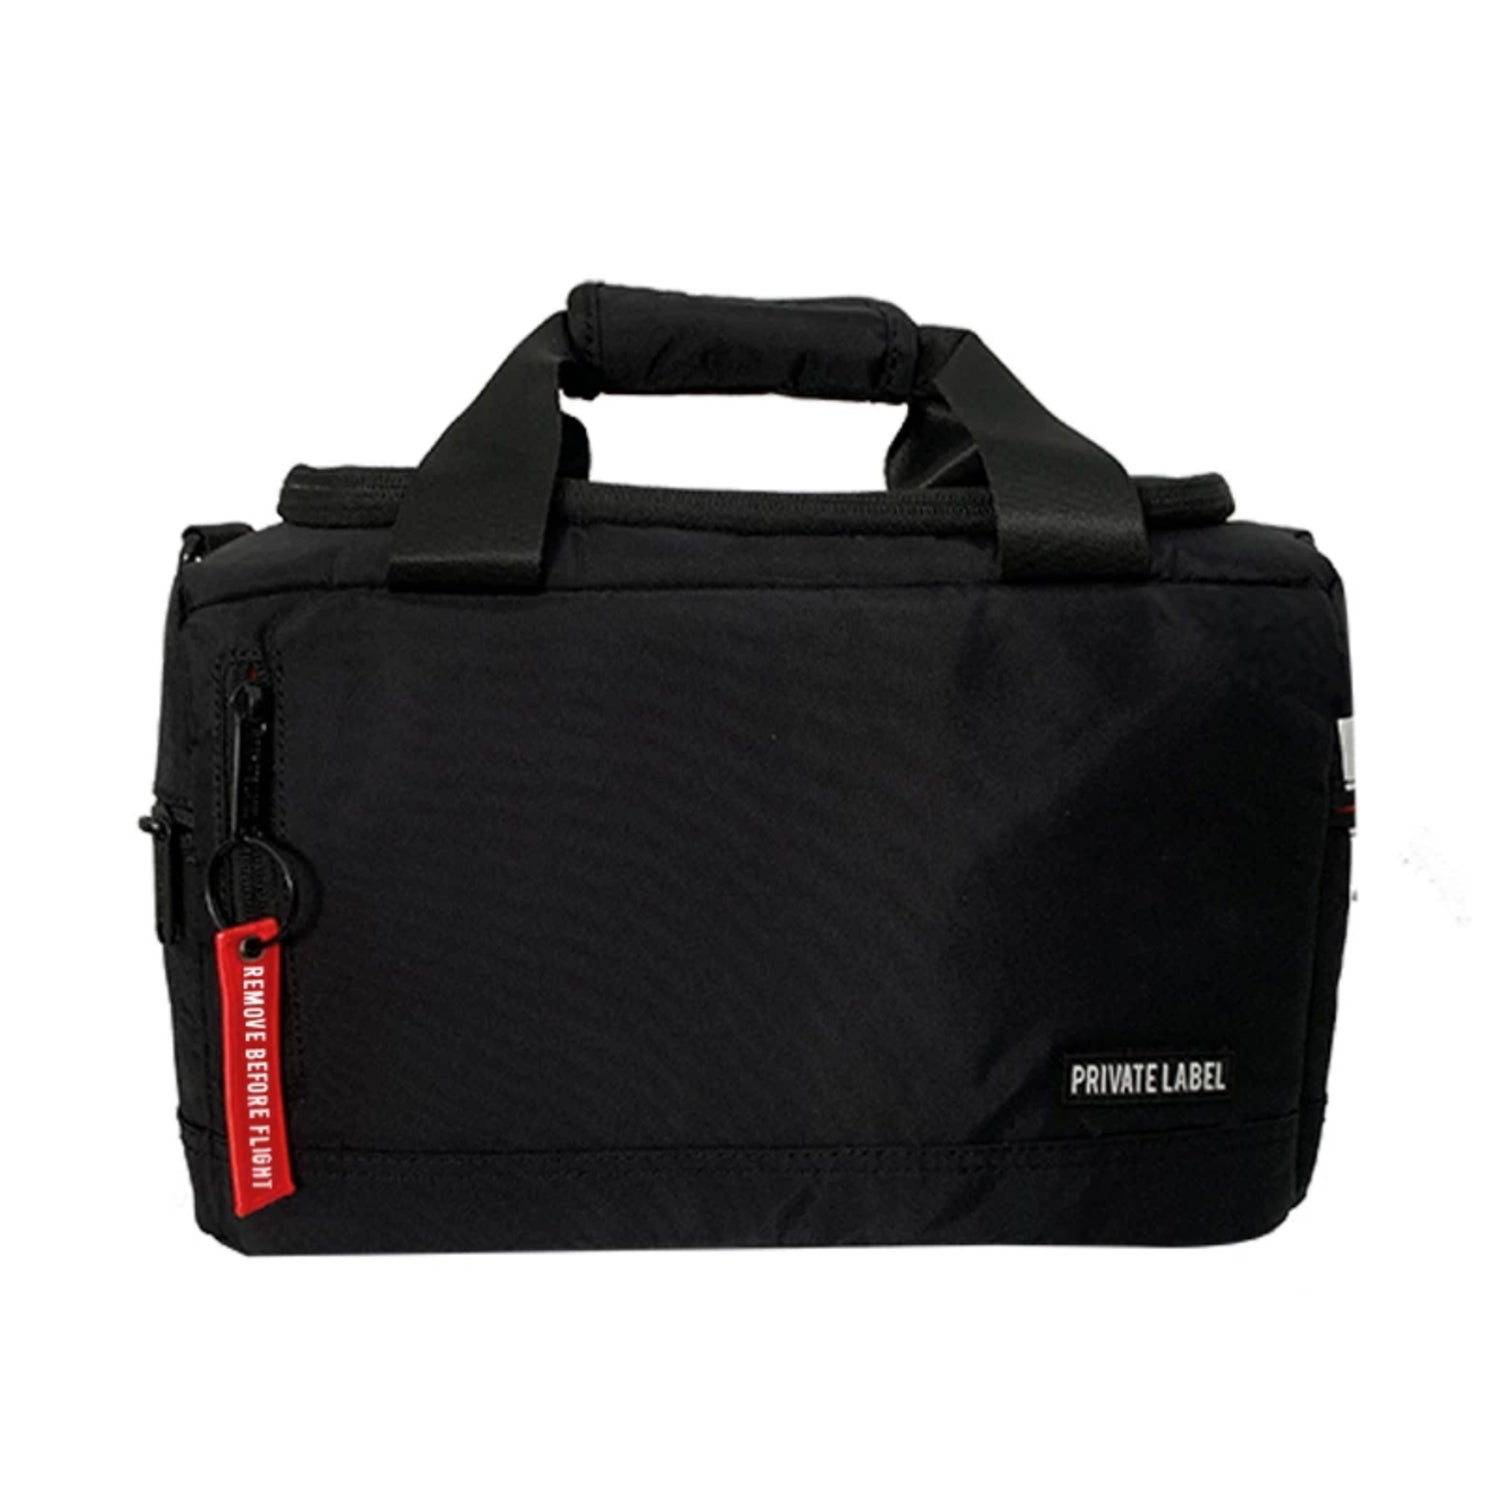 PRIVATE LABEL CAMERA BAG